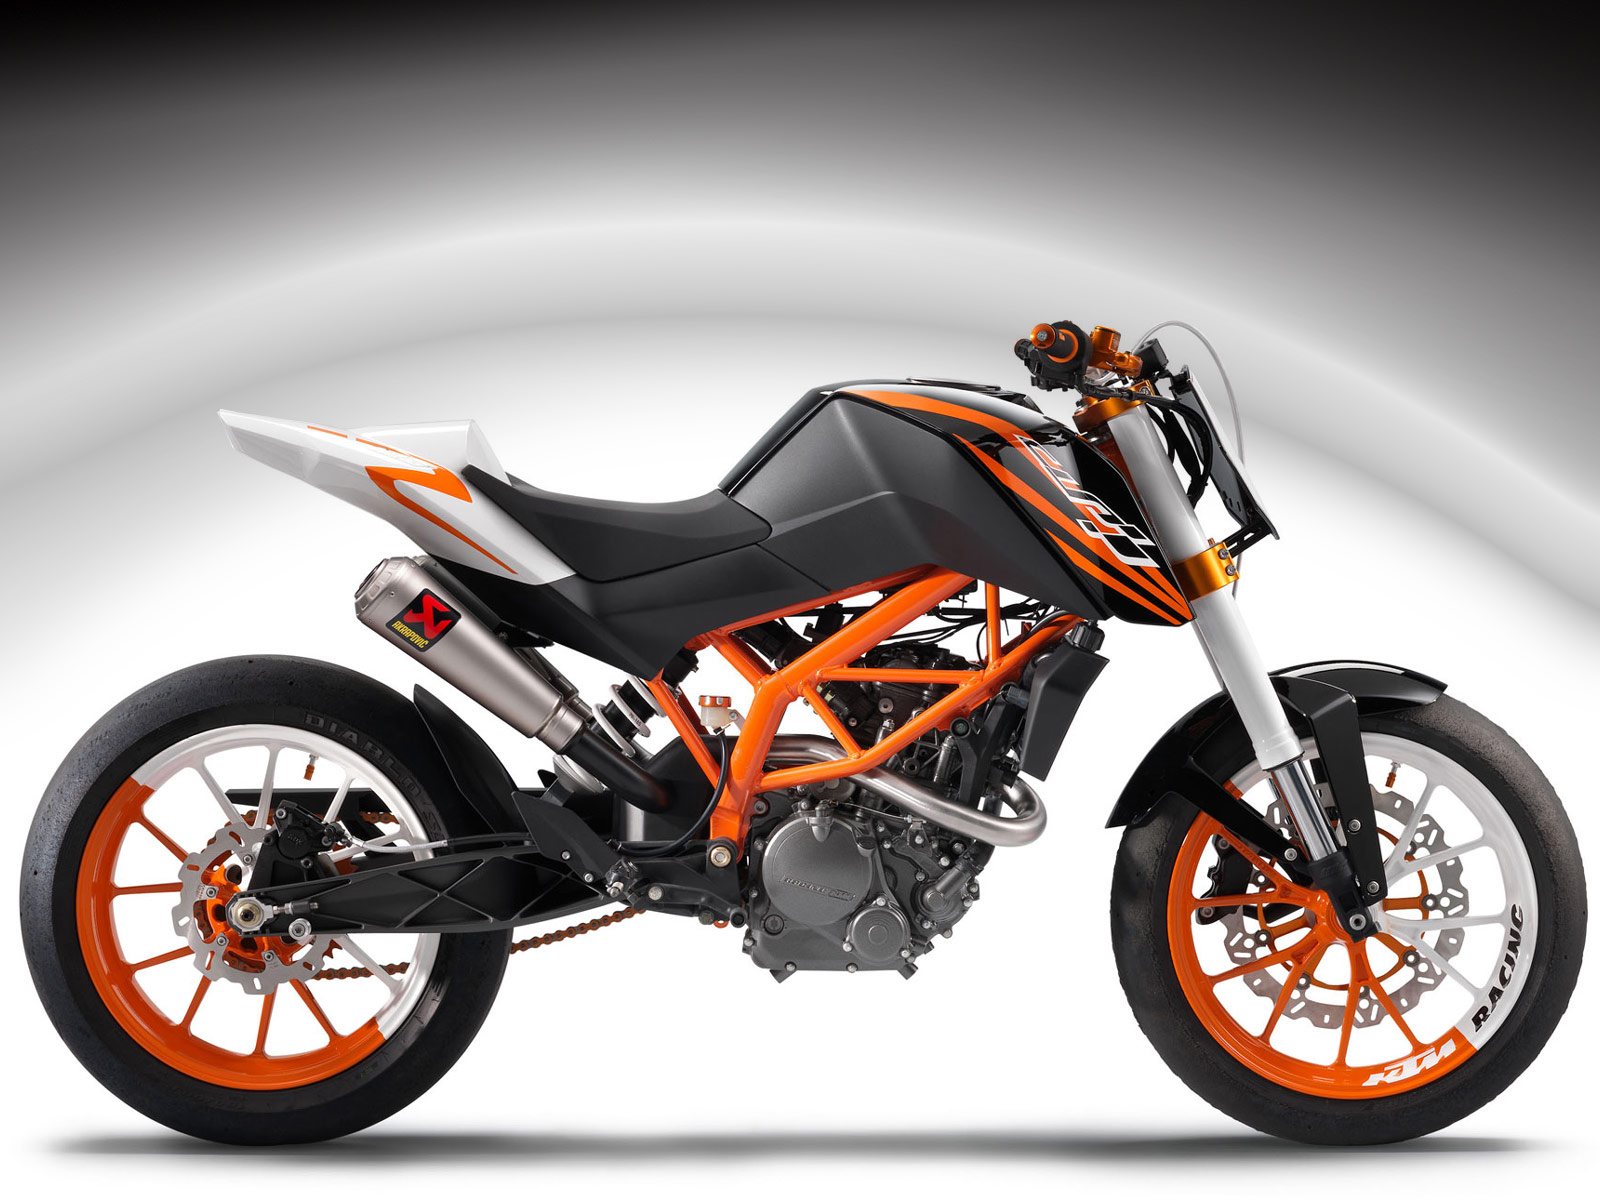 Ktm New Motorcycles Wiring Diagram 125 Exc Six Days 200 Race 2010